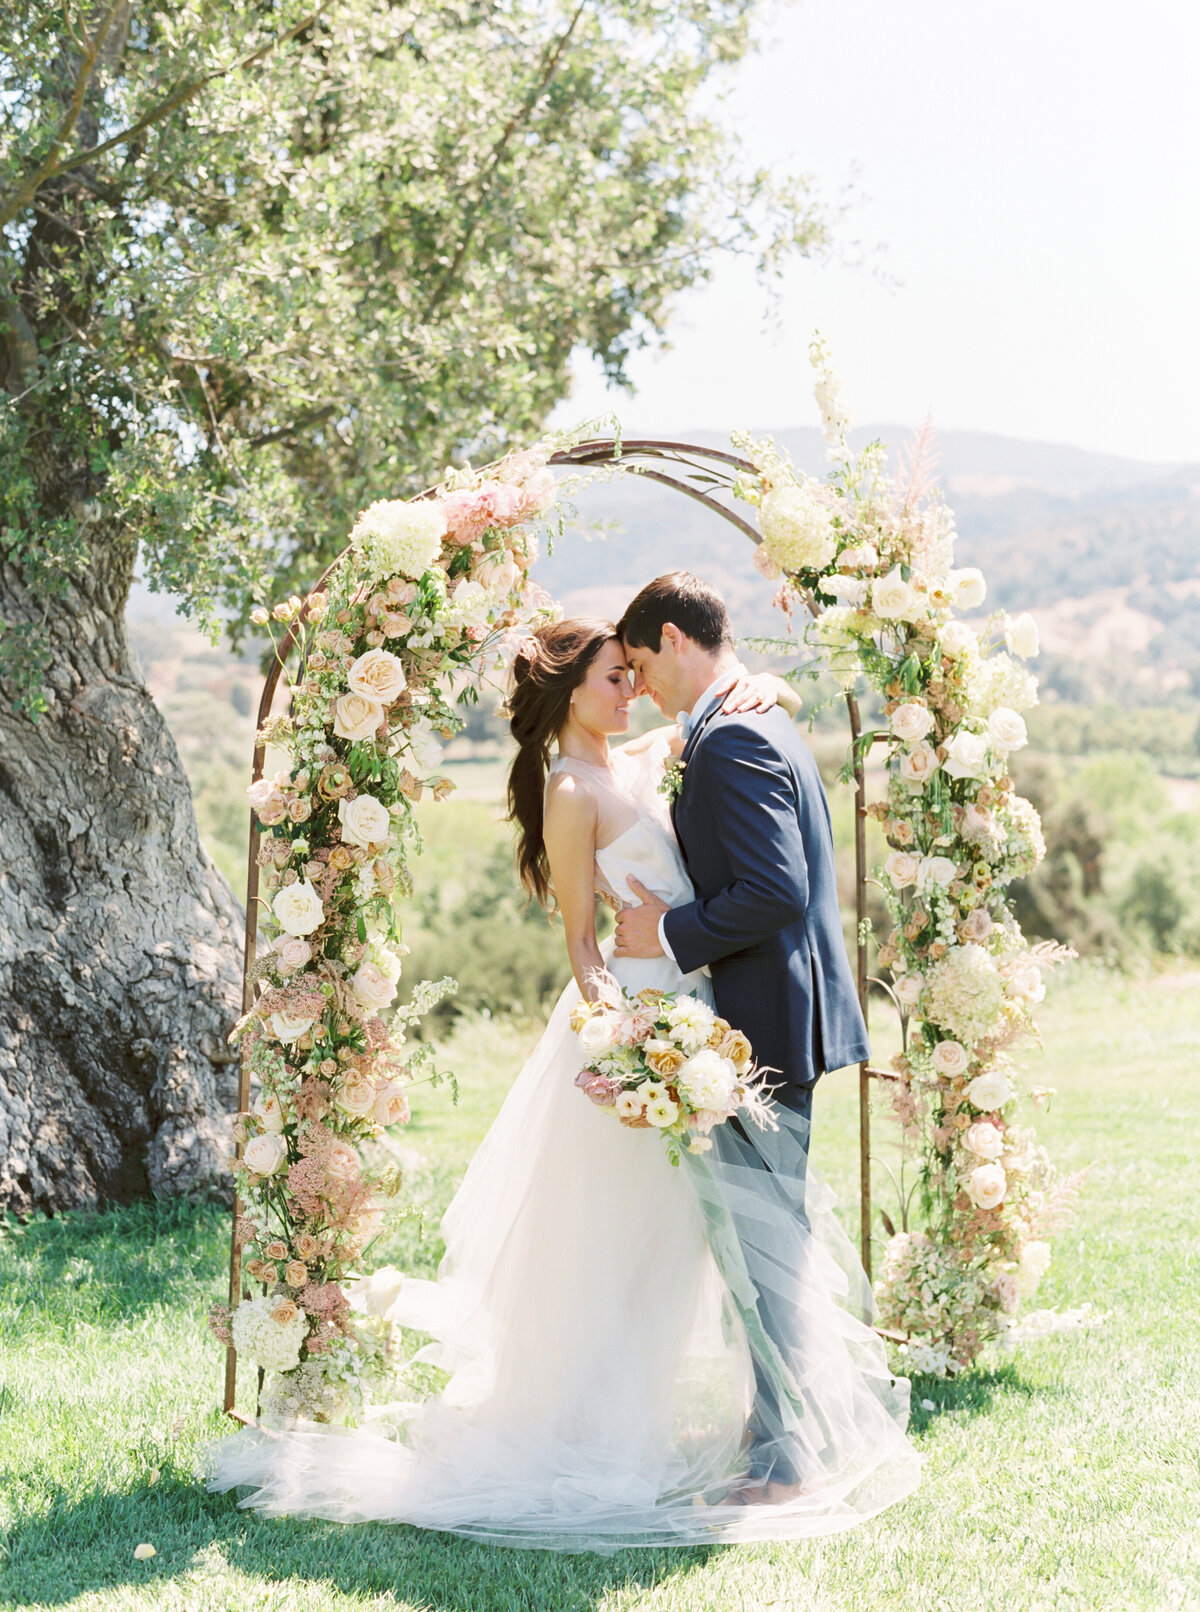 TiffaneyChildsPhotography-CaliforniaWeddingPhotographer-Clara+Alexandre-SunstoneVilla-277